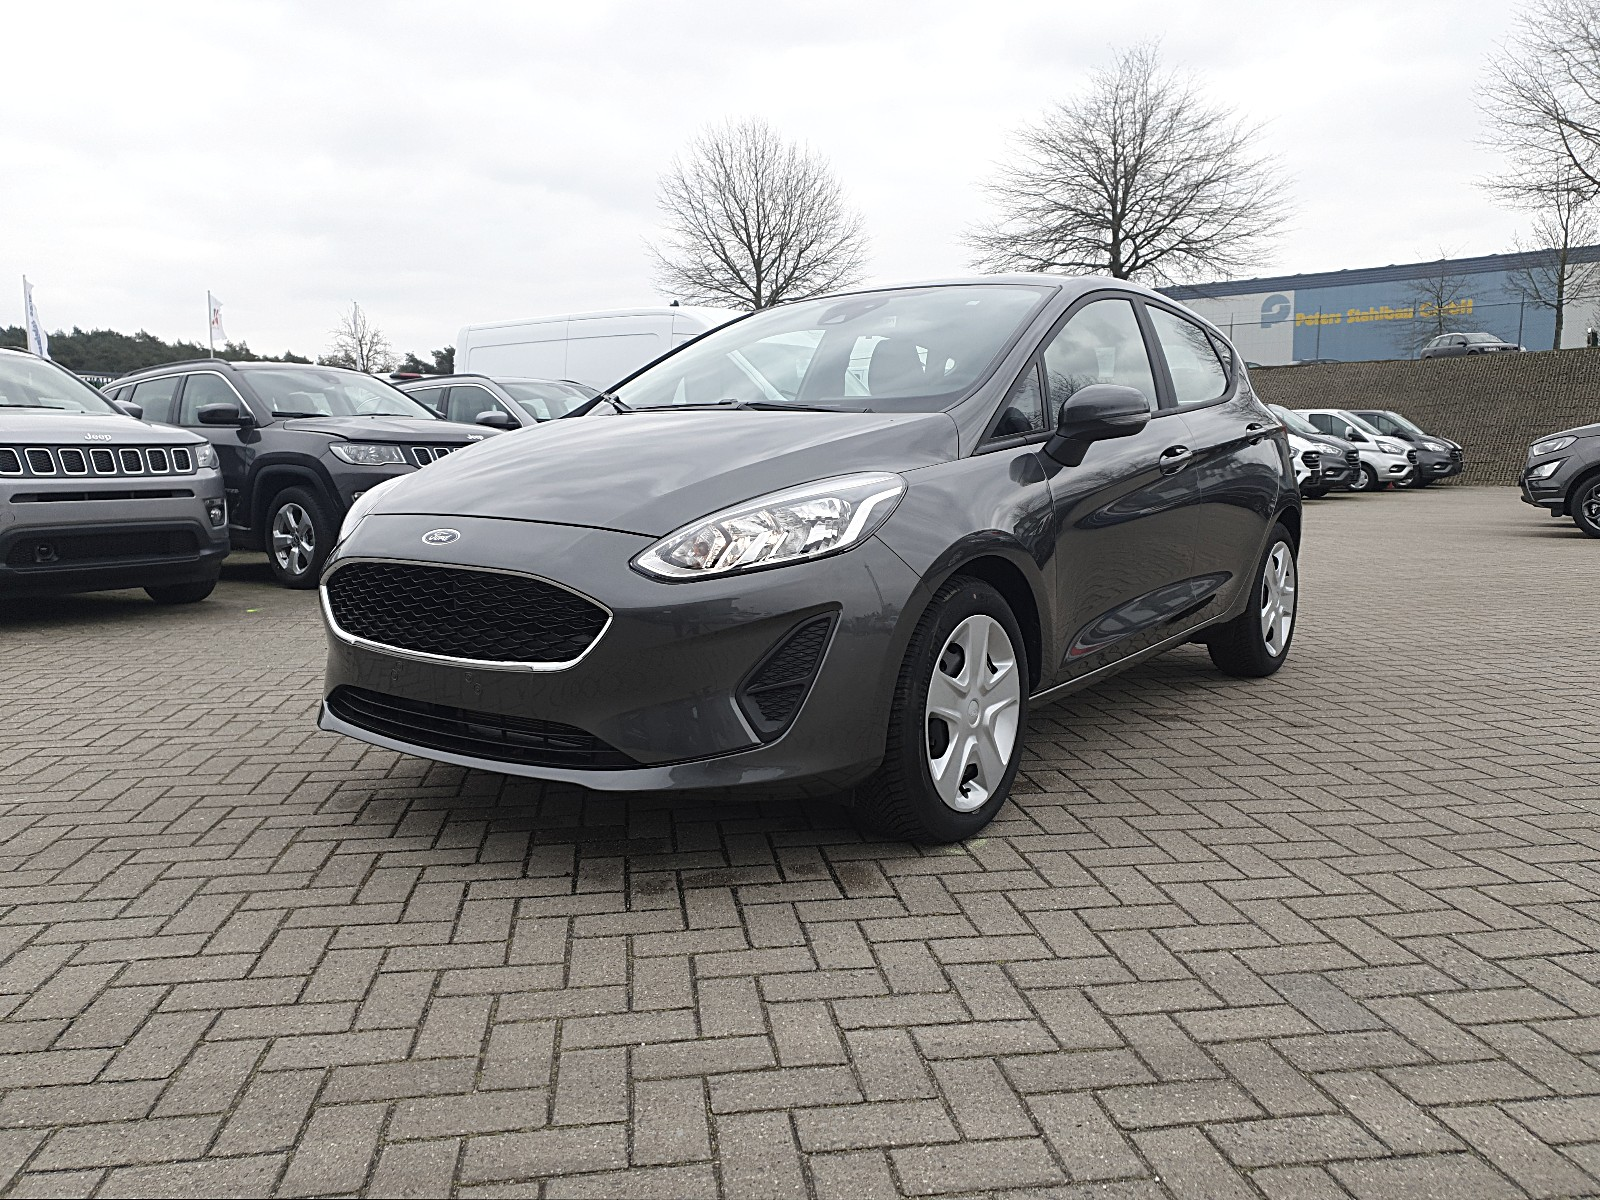 FORD FIESTA 1.1 70PS Trend 5-Türig Klima Navi Bluetooth PDC DAB+ Touch-Bilds Autosoft BV, Enschede